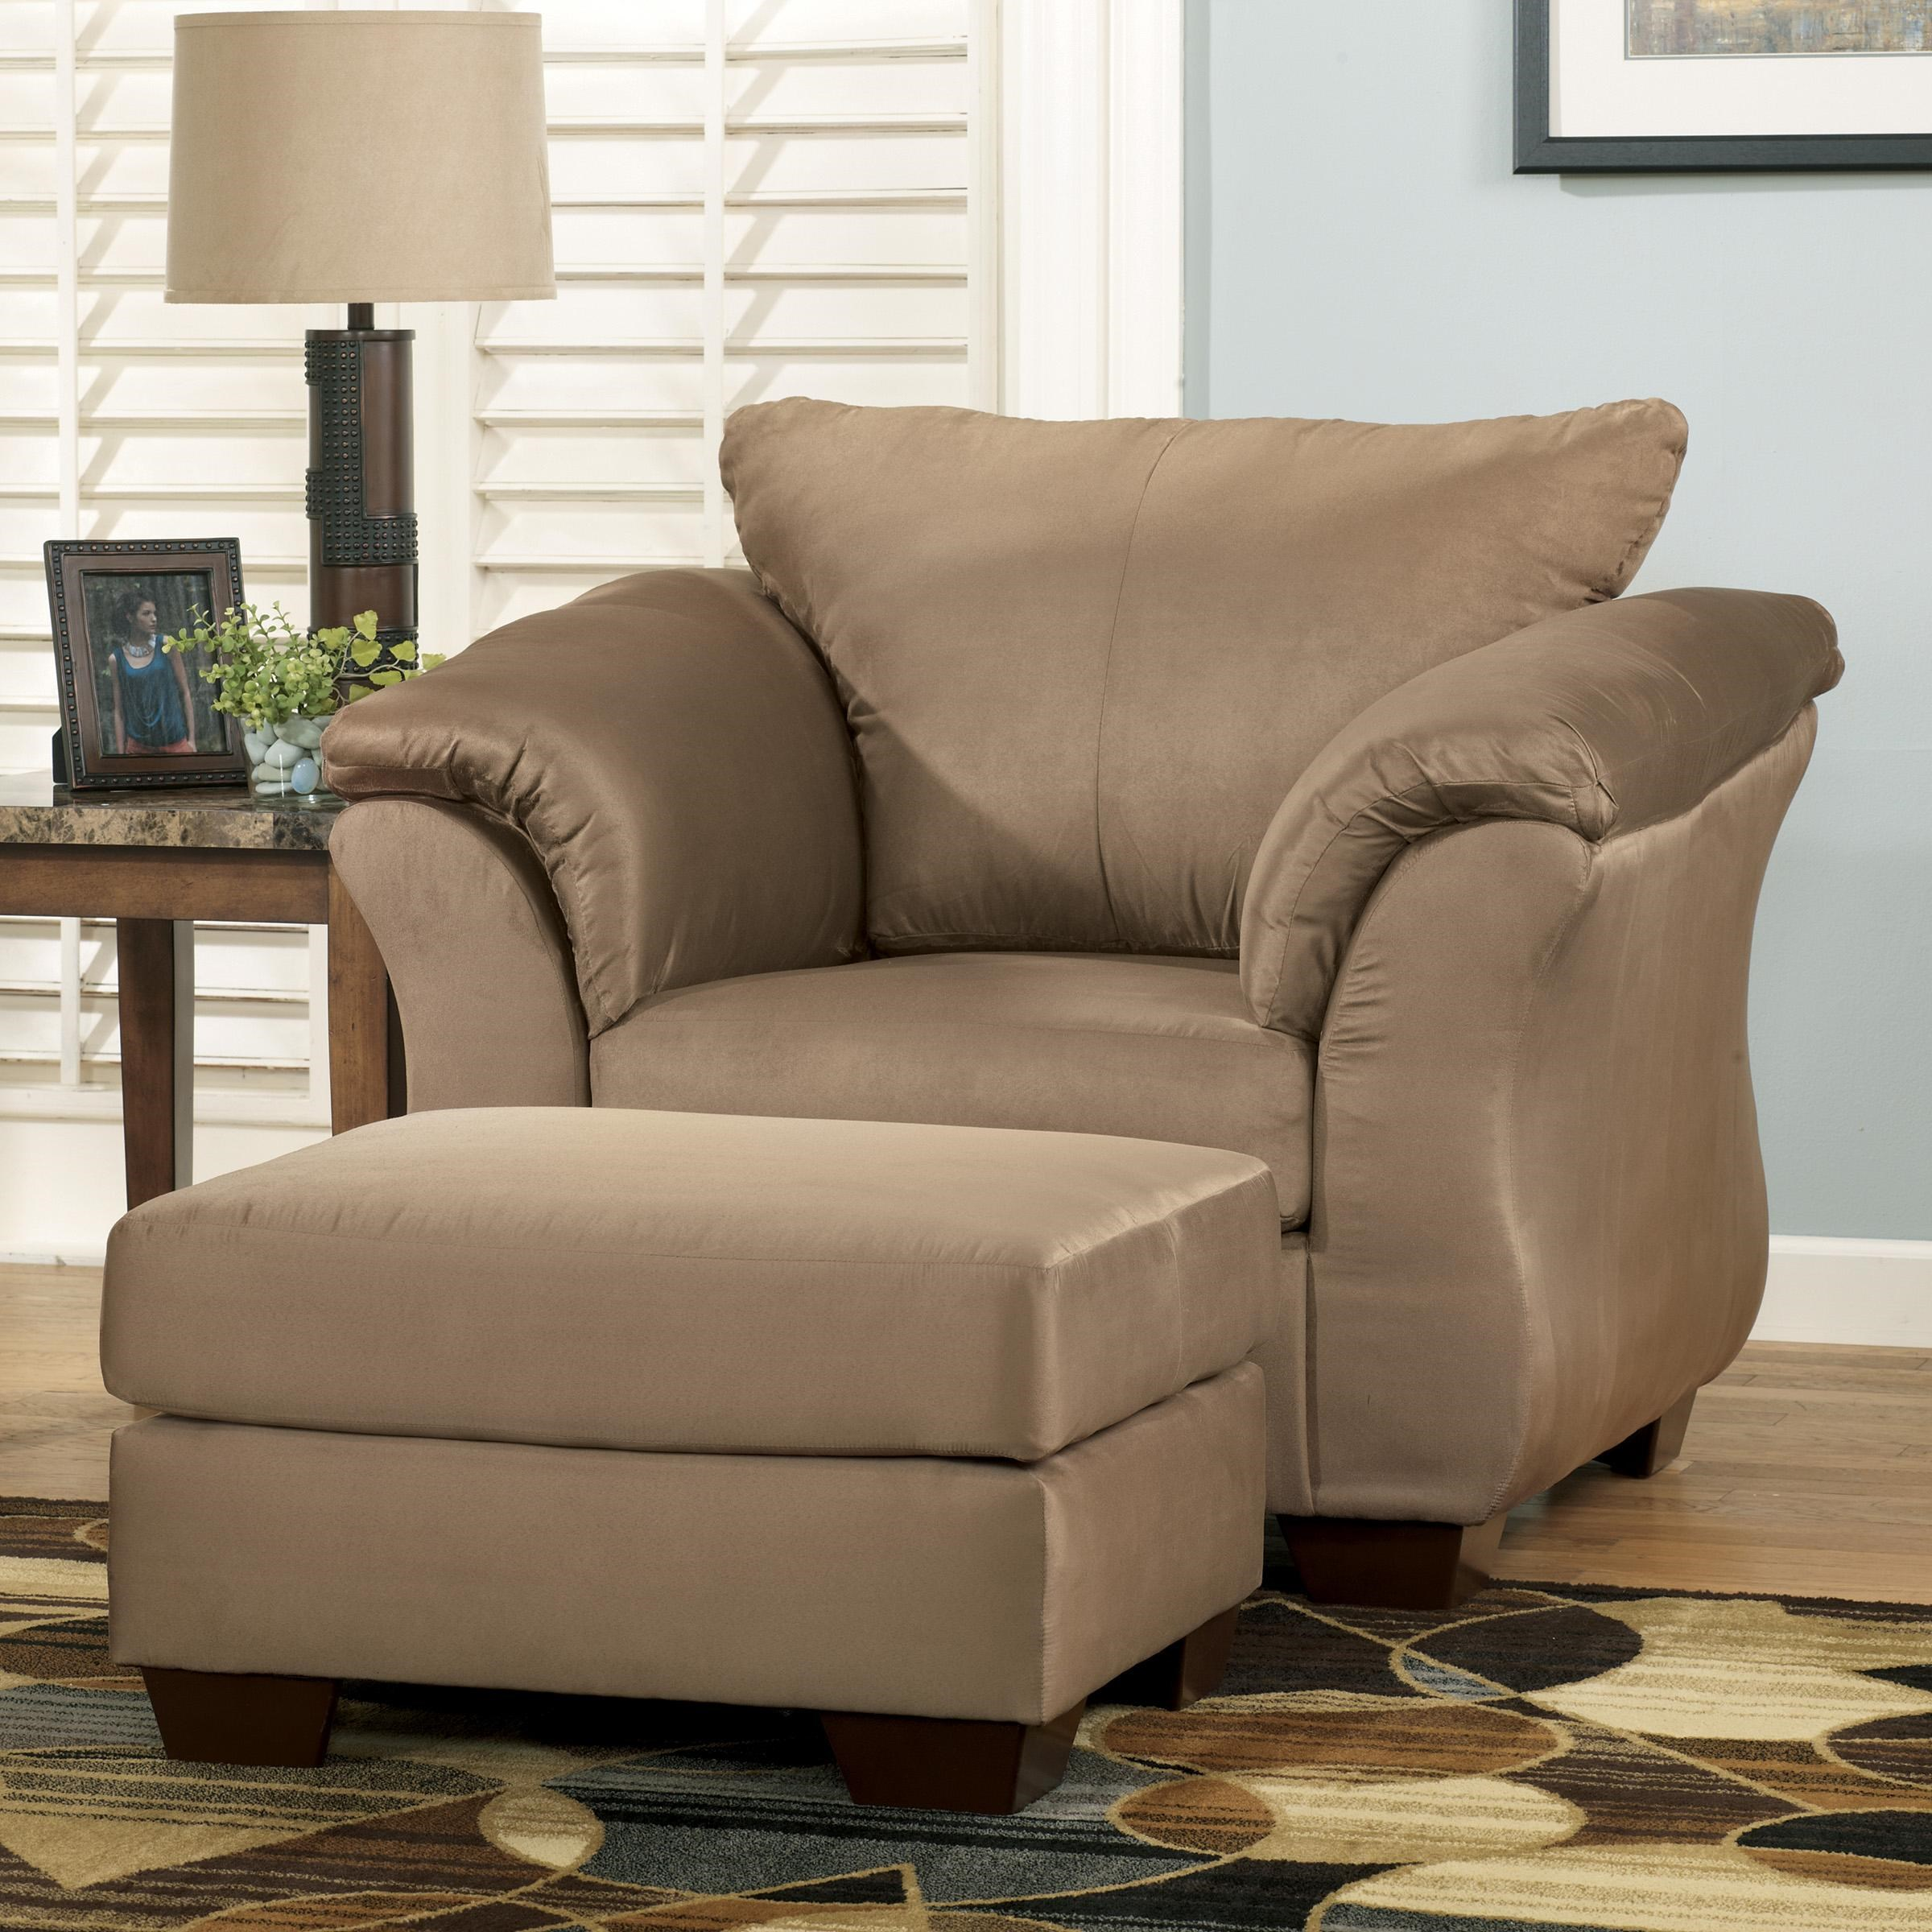 Signature Design By Ashley Darcy   Mocha Contemporary Upholstered Chair And  Ottoman With Tapered Legs